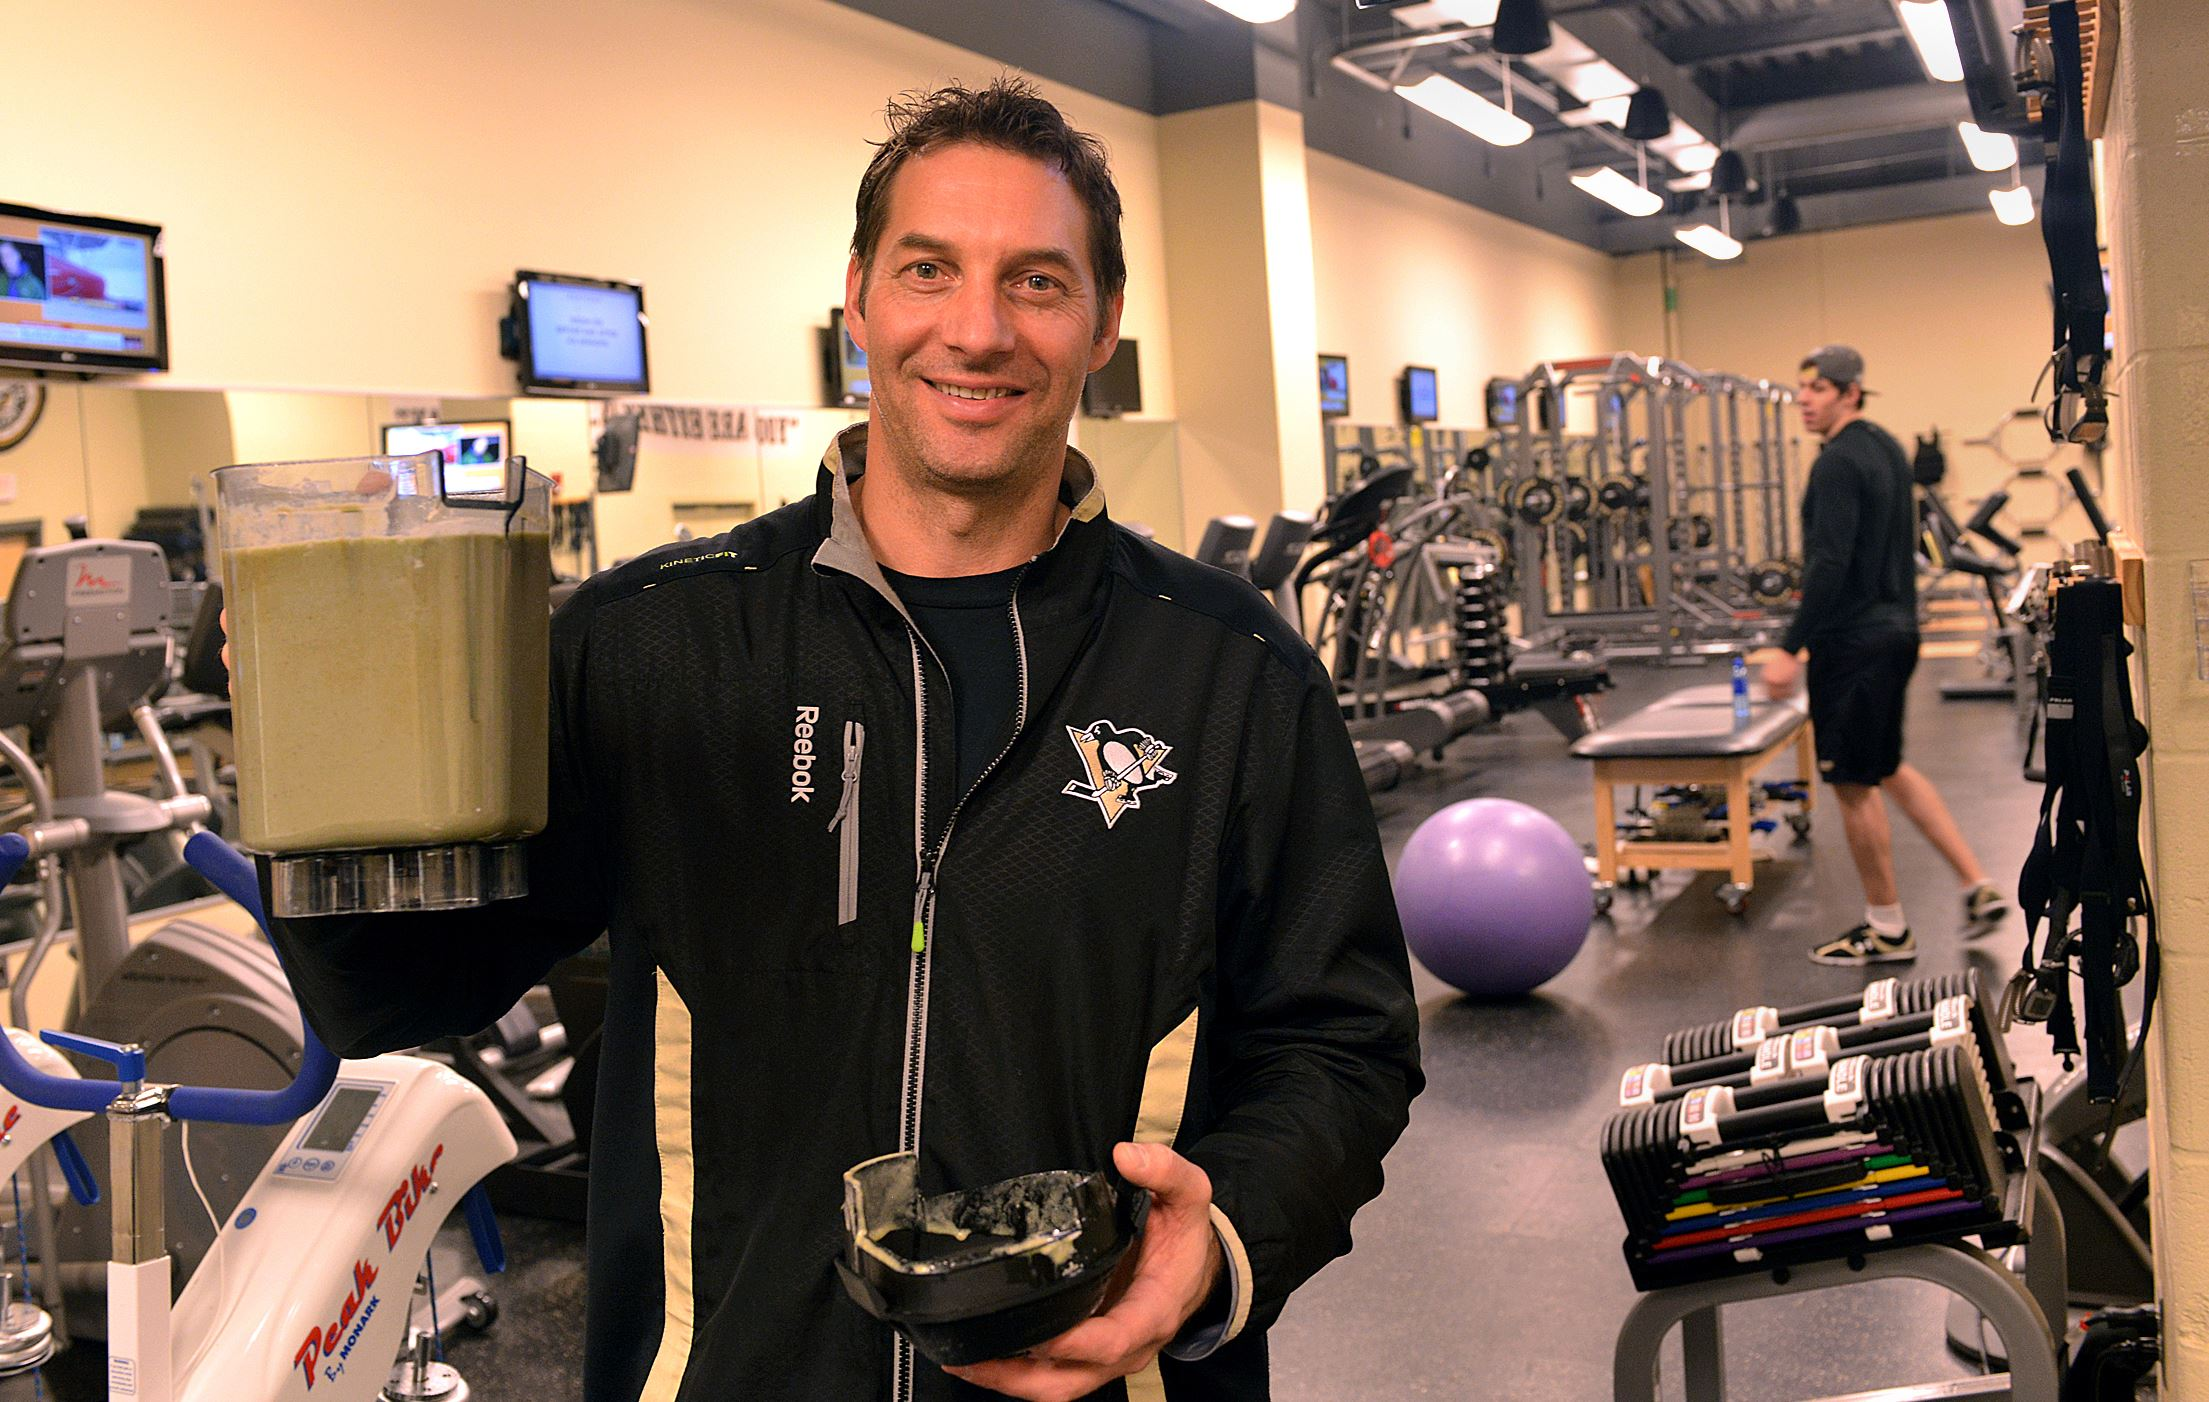 20140331lrpenguinfood10-8 Mike Kadar, the Penguins strength coach, shows off one of the shakes he made.